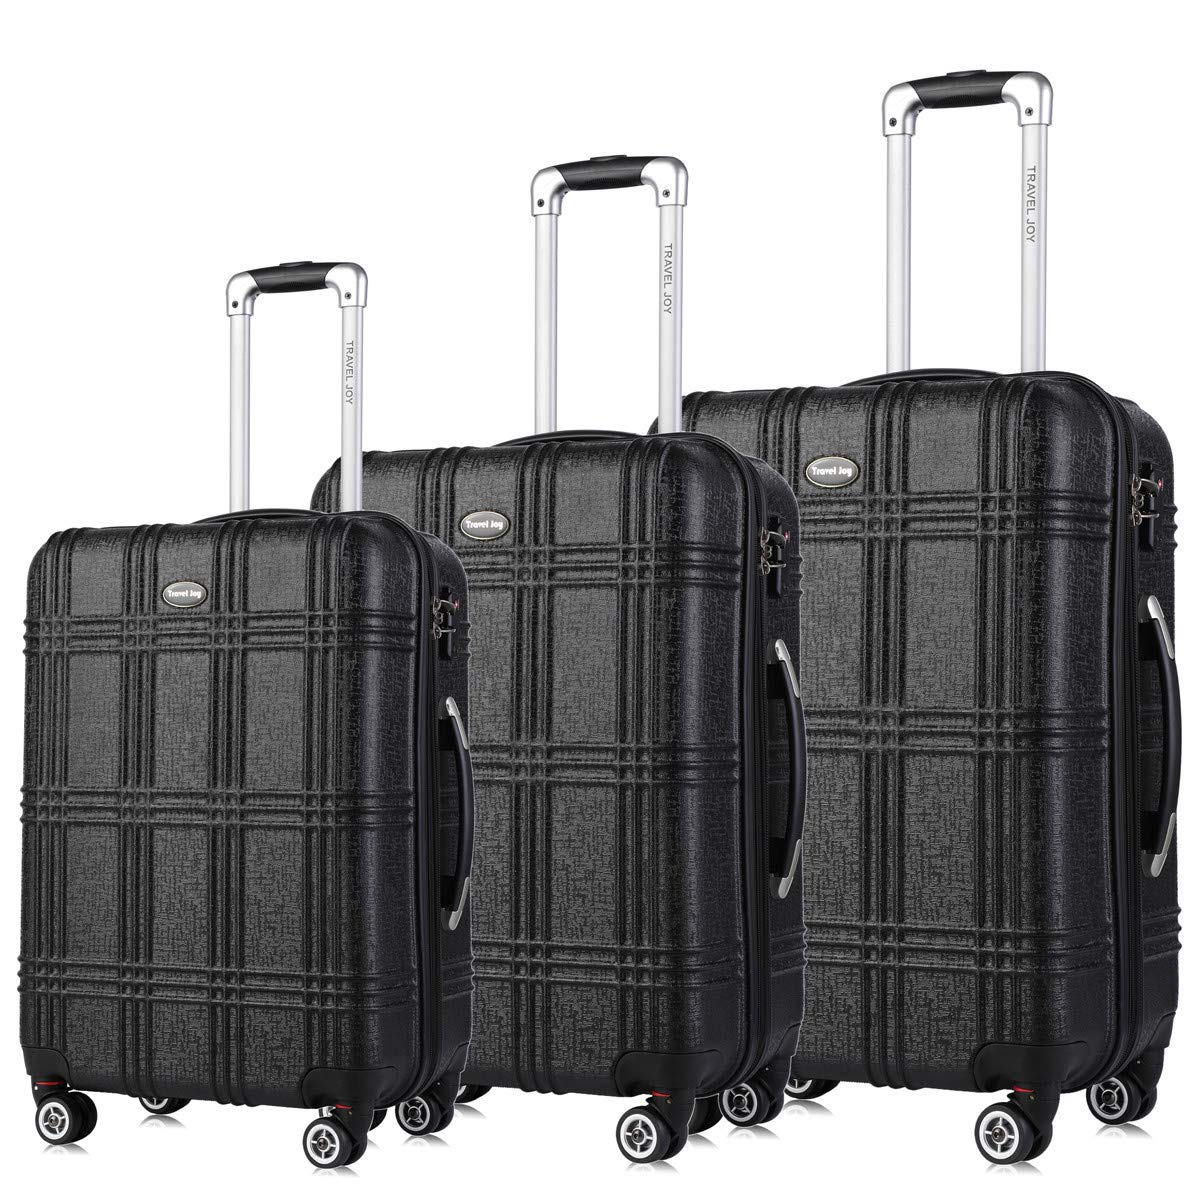 Best Luggage Sets For Money 2020